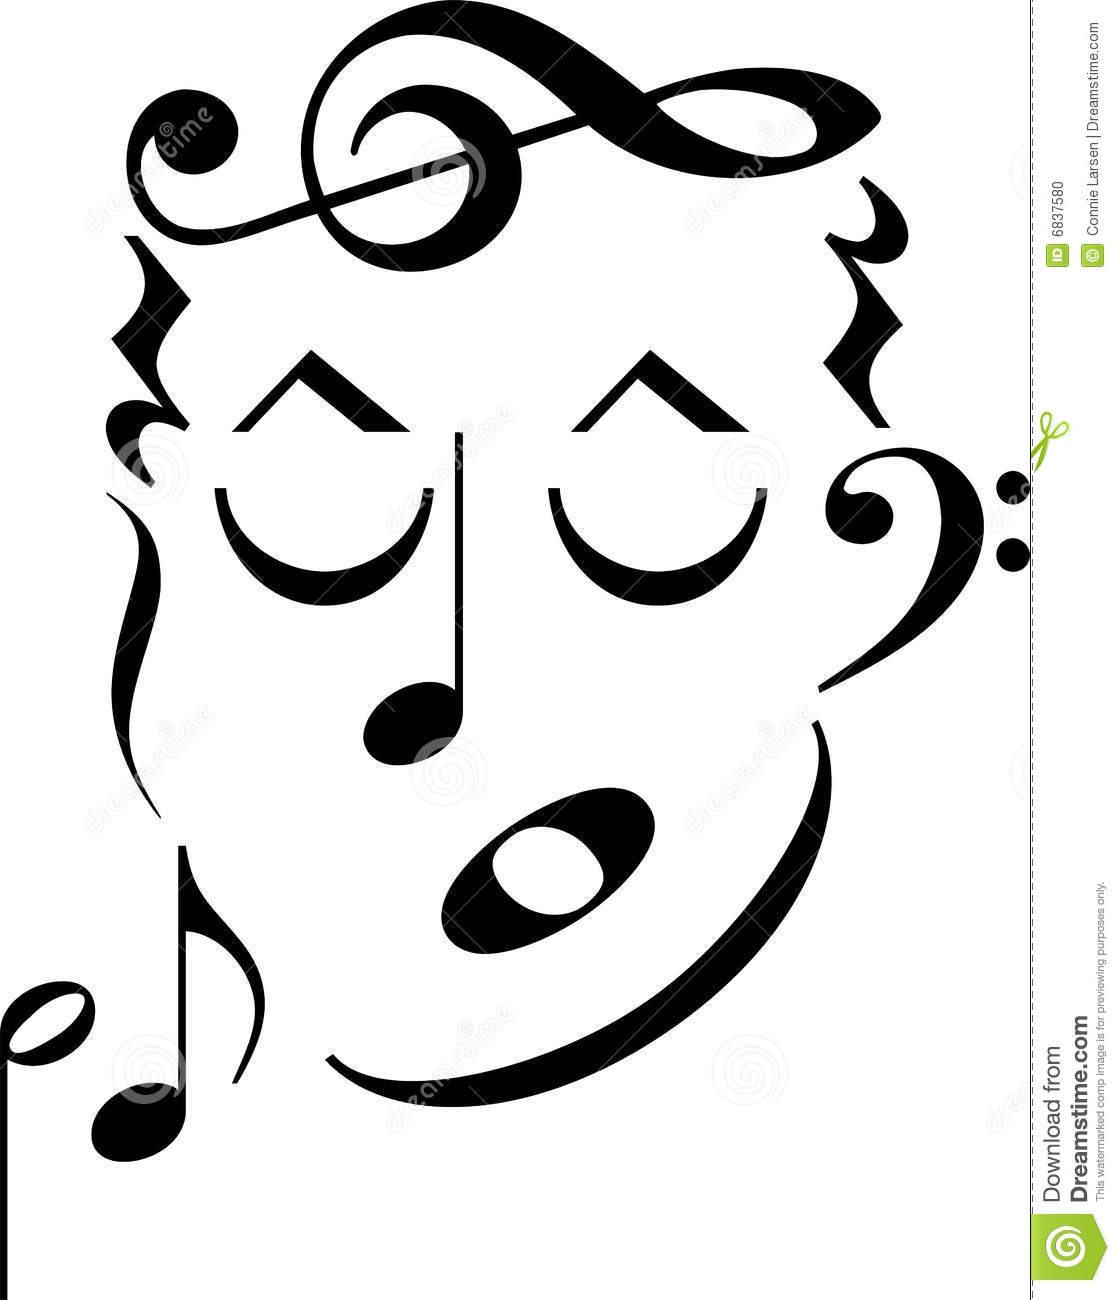 Music symbol face stock illustration illustration of drawings music symbol face buycottarizona Images